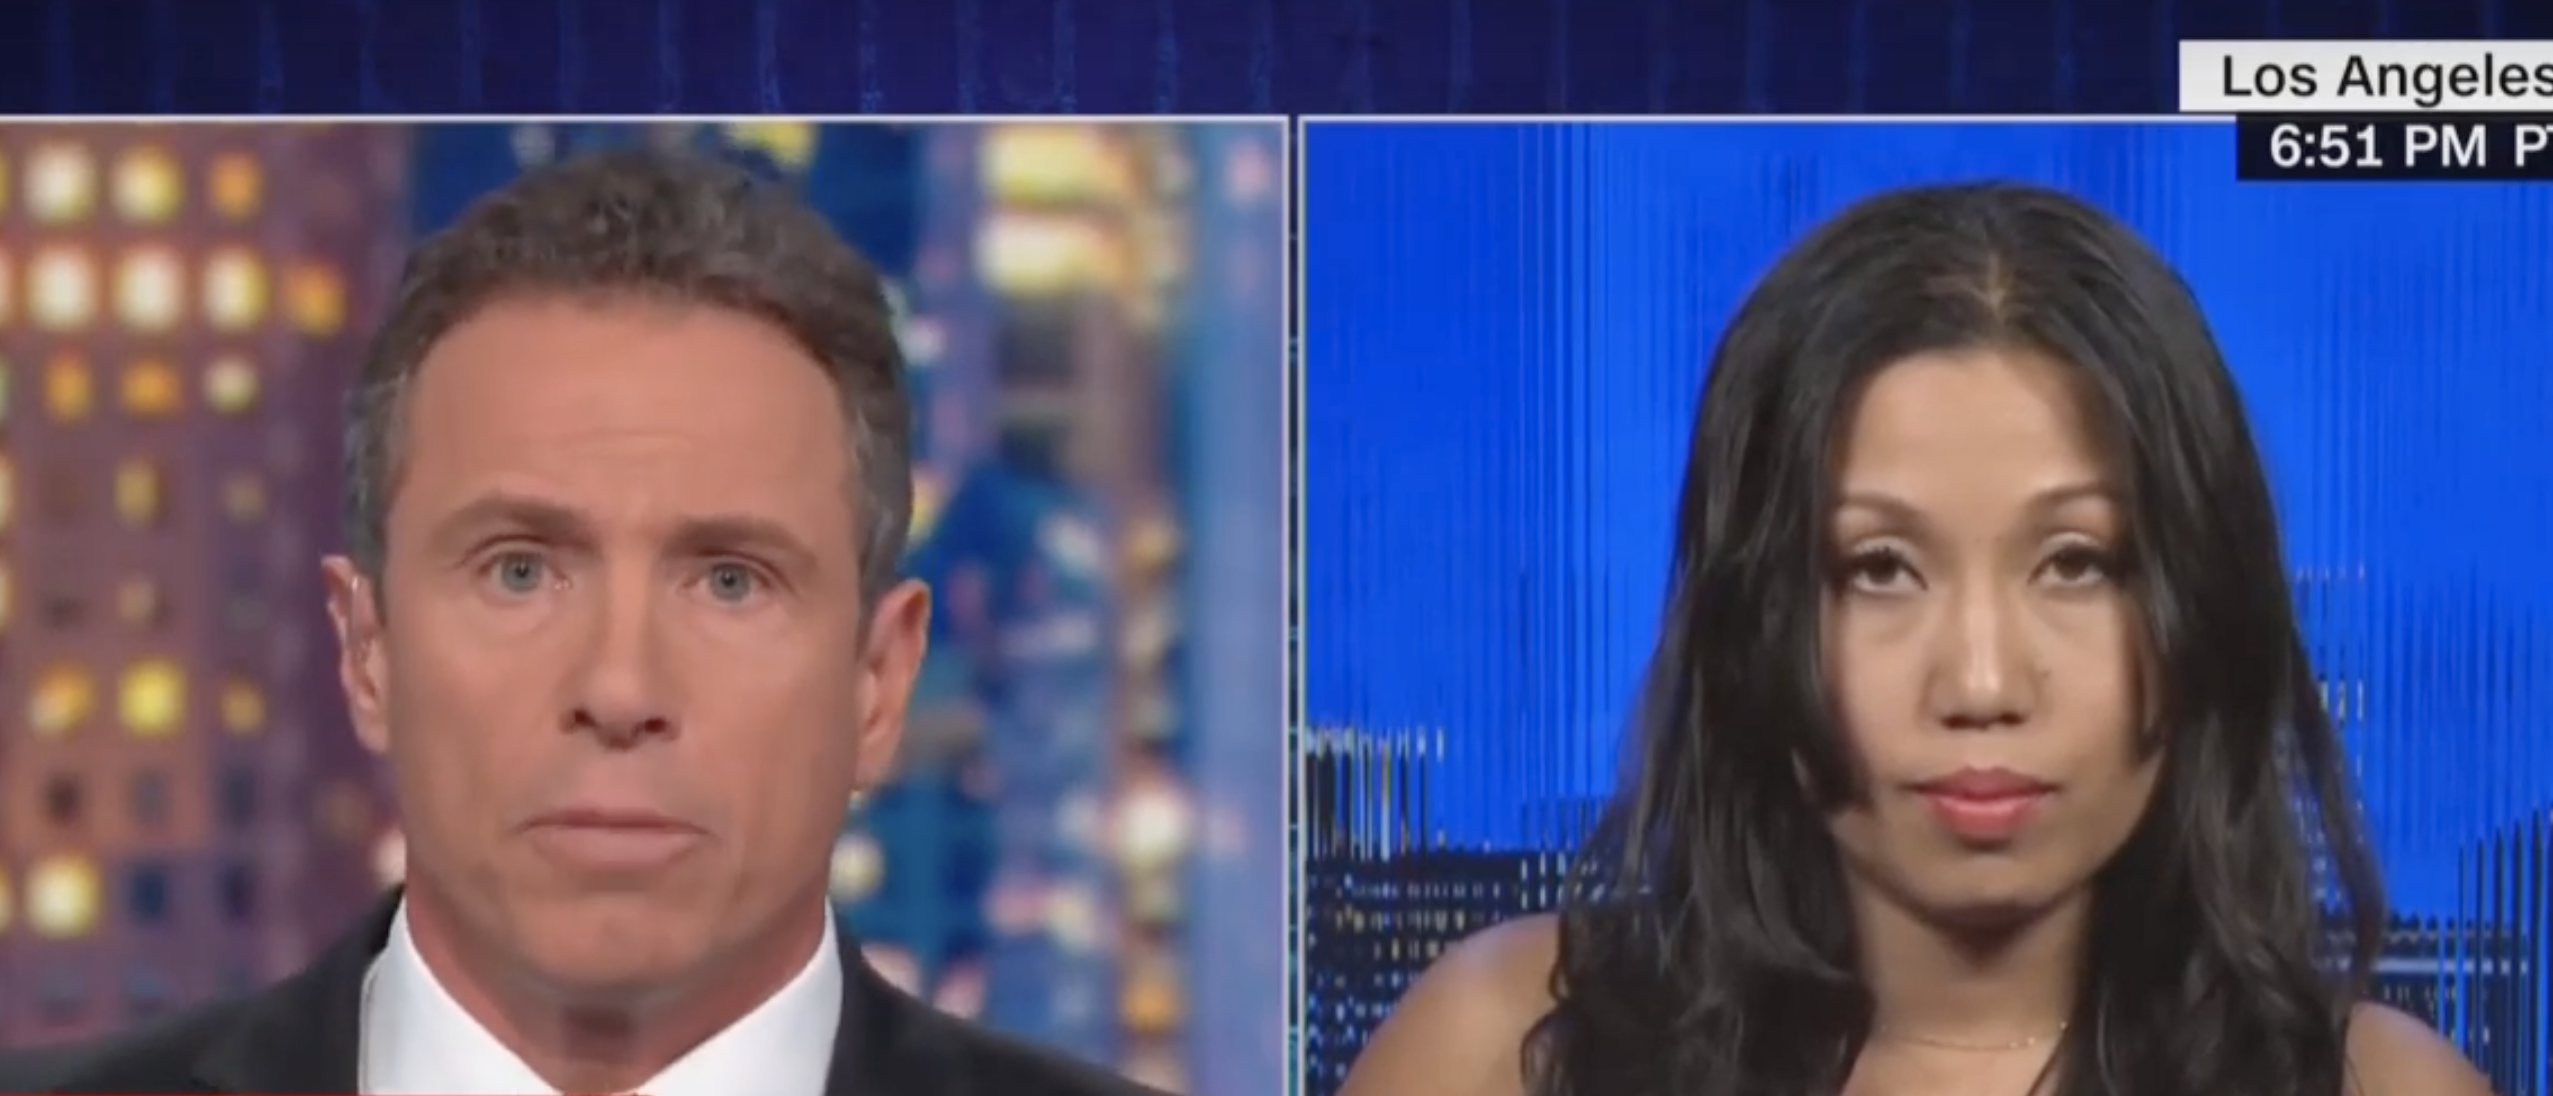 'Alexandria Ocasio-Cortez Is The Face Of Socialism': Republican Featured In Face Burning Ad Defends Decision